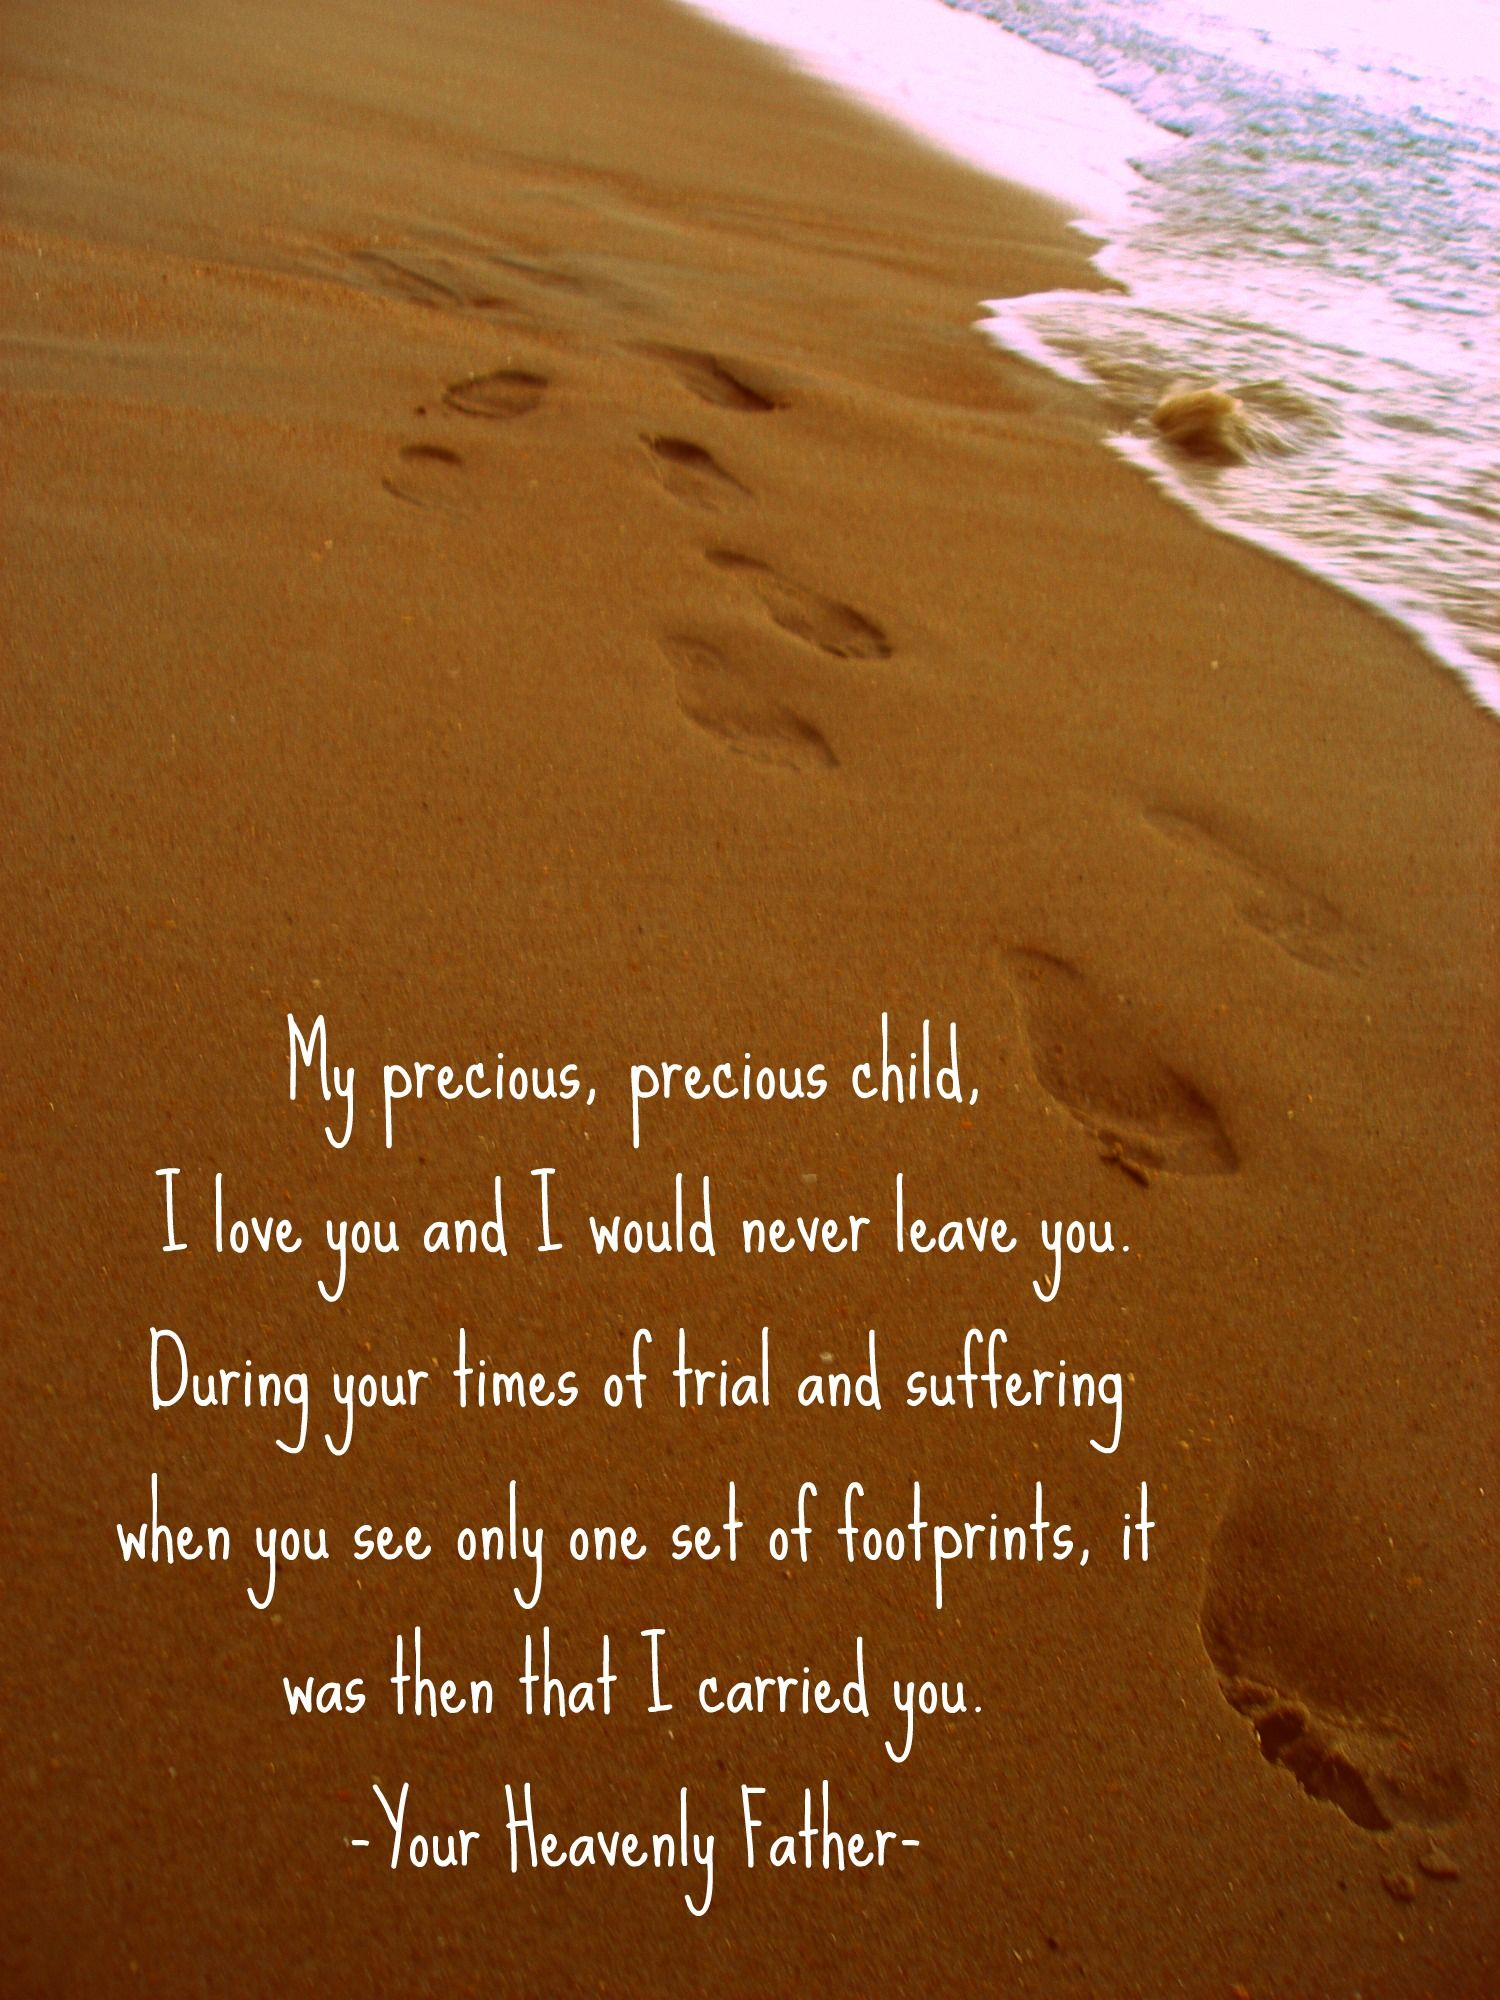 Footprints in the Sand Poem- This is such a precious poem ...